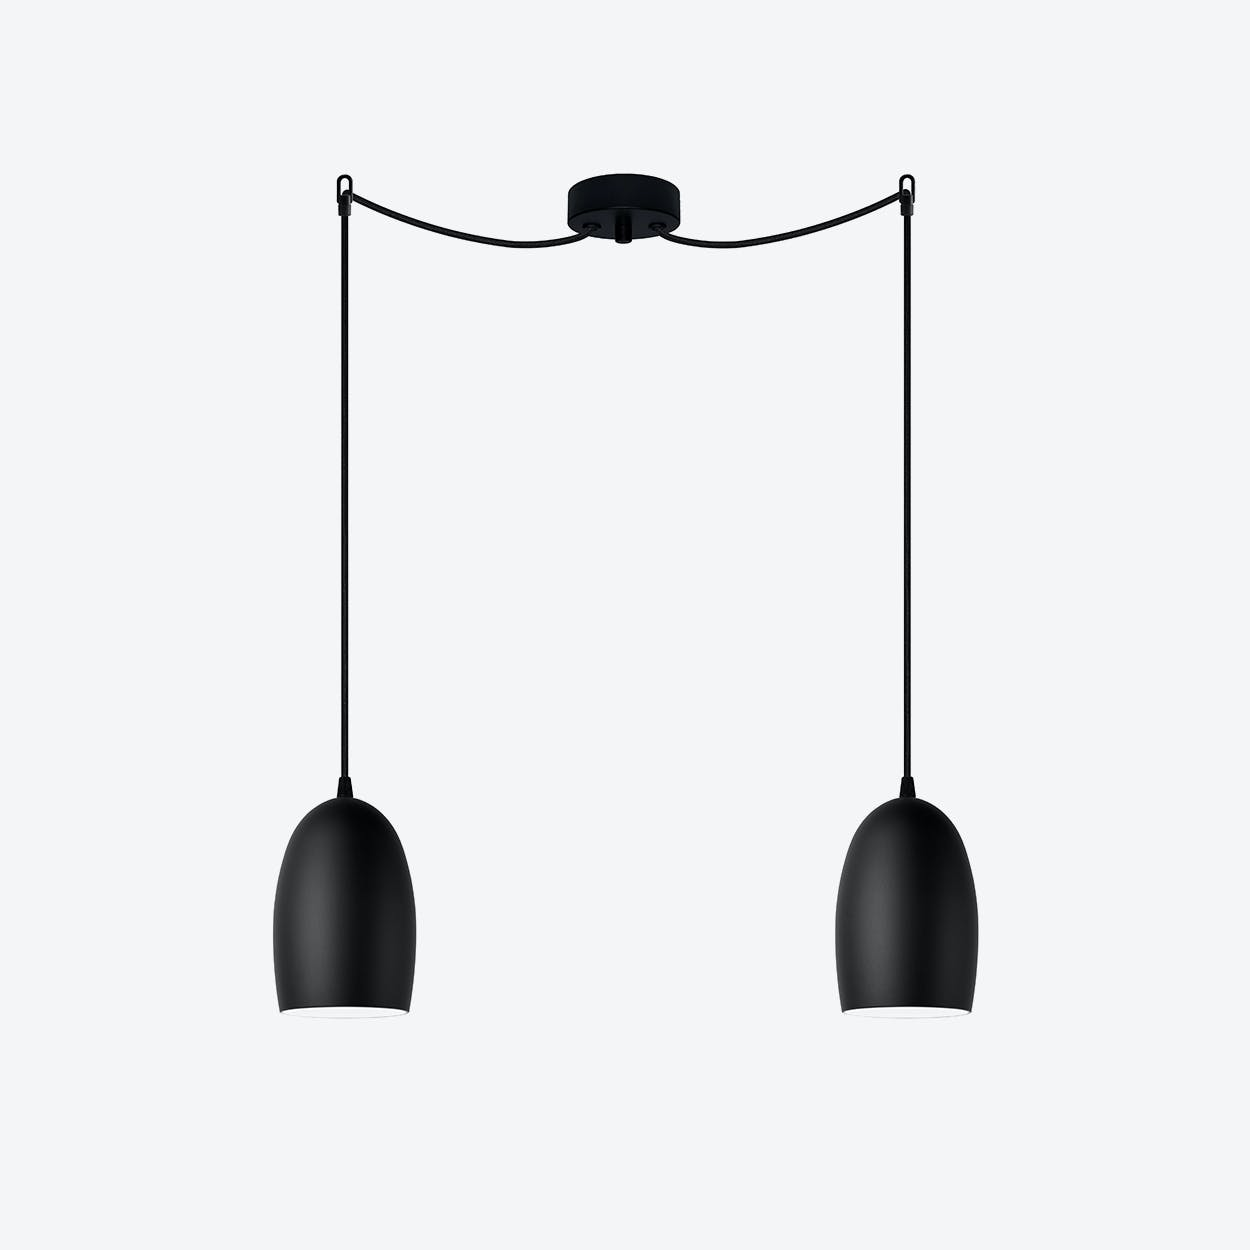 UME Double Pendant Light in Matte Black